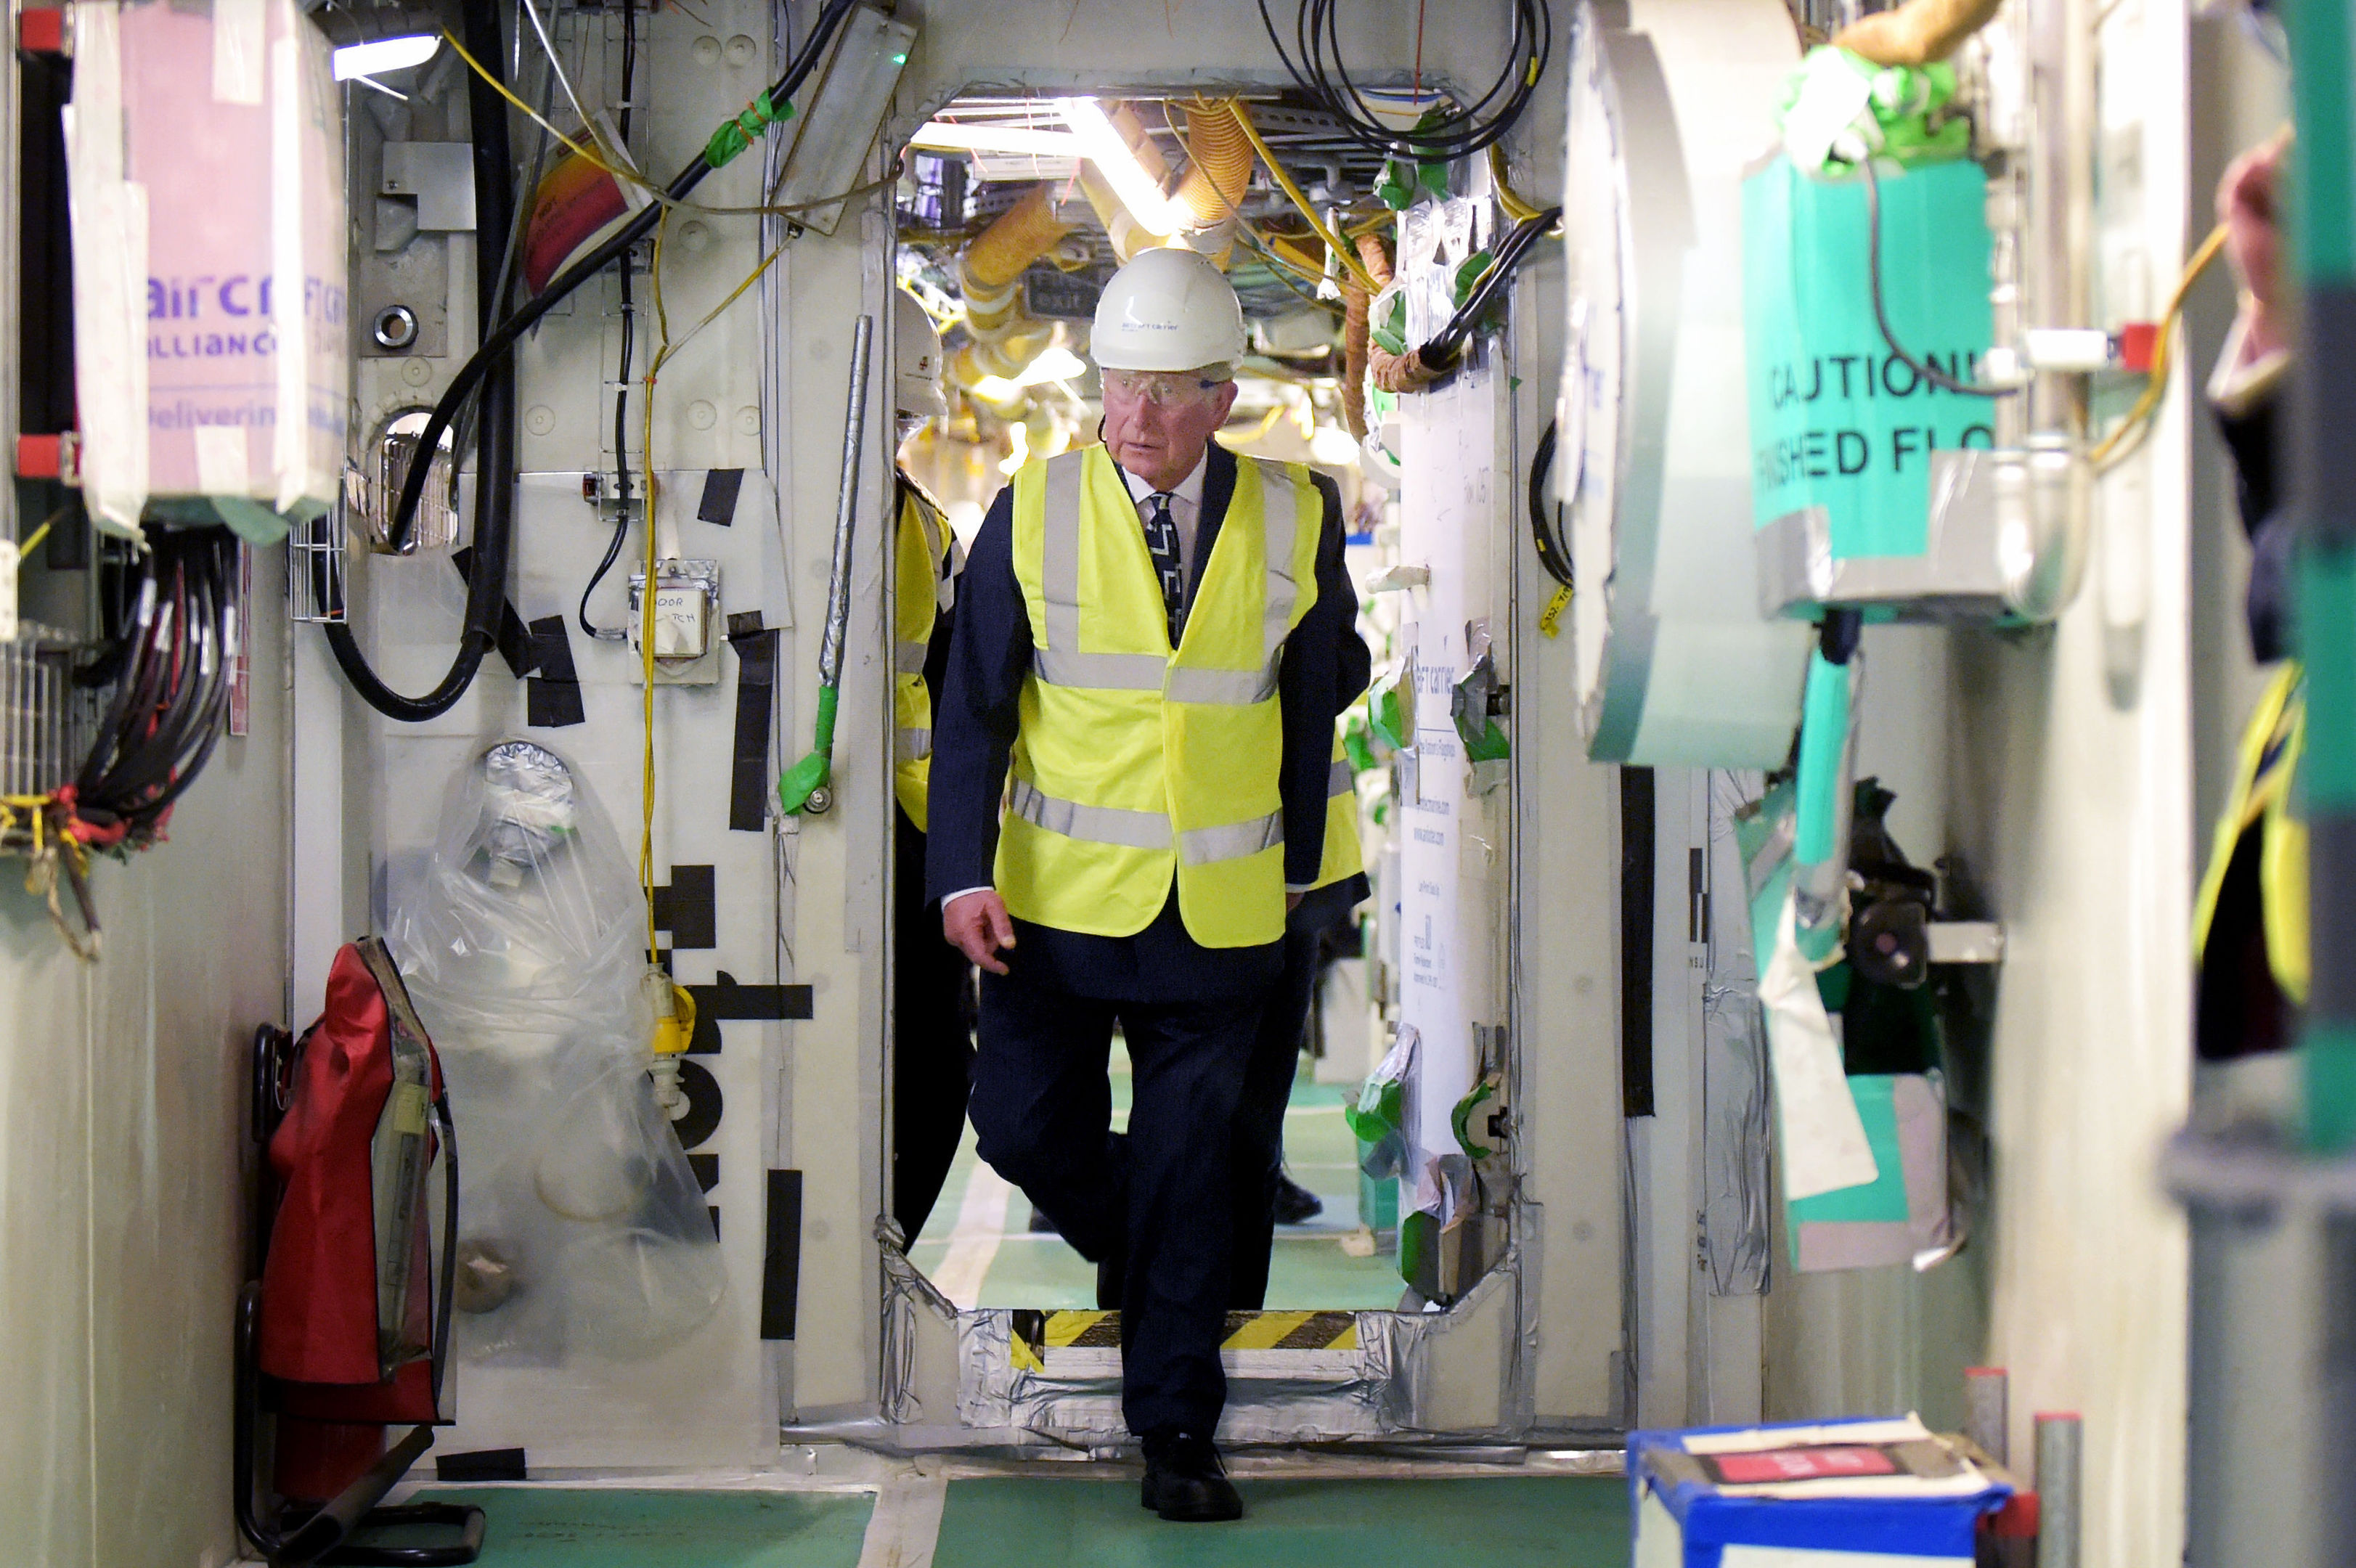 The Prince toured the aircraft carriers in Rosyth.